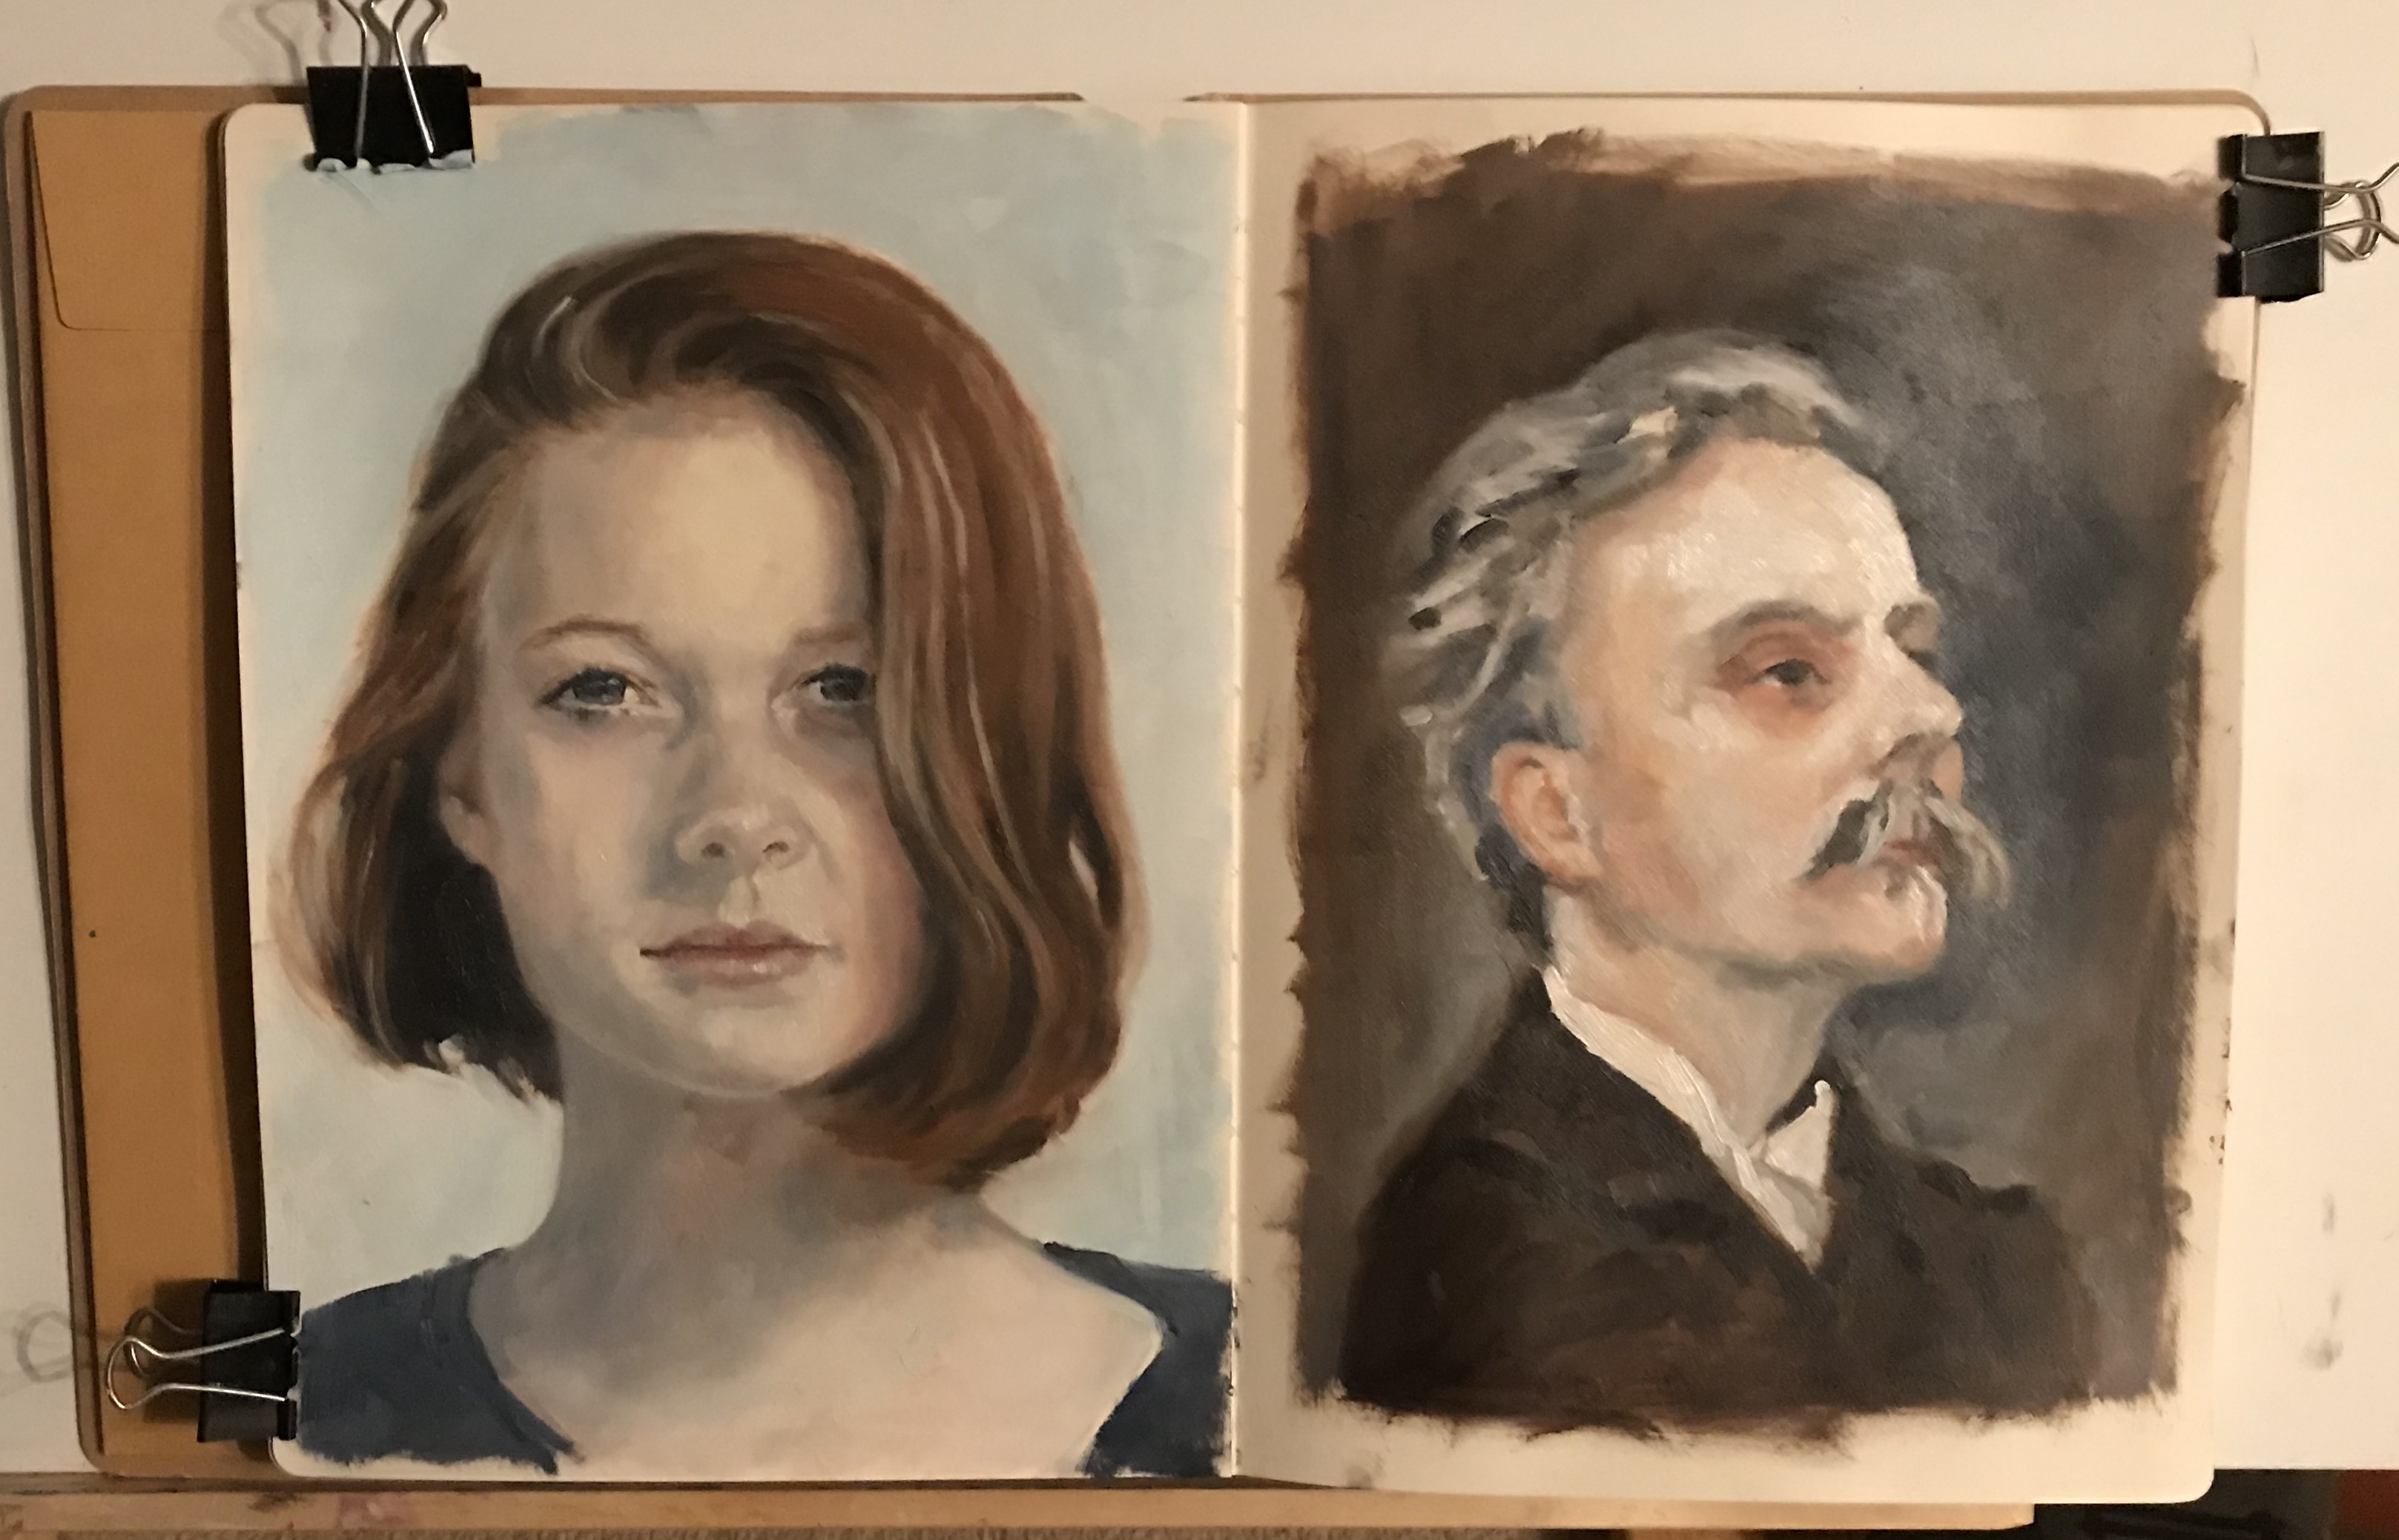 Sketchbook - Portrait Practice 1 & 2